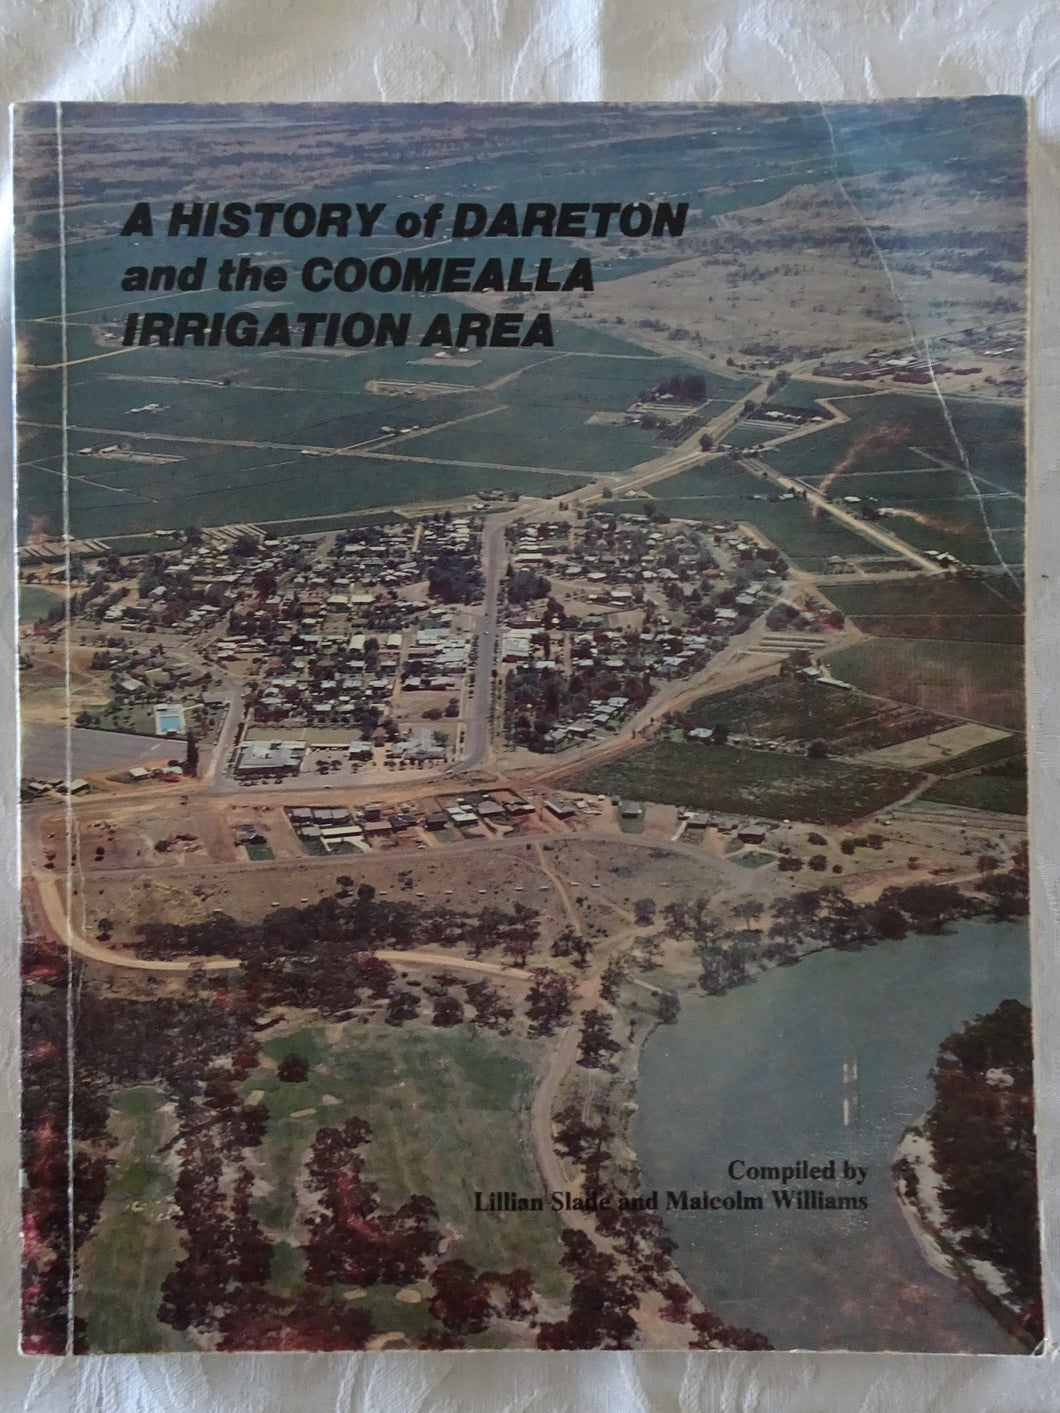 A History of Dareton and the Coomealla Irrigation Area by Lillian Slade and Malcolm Williams